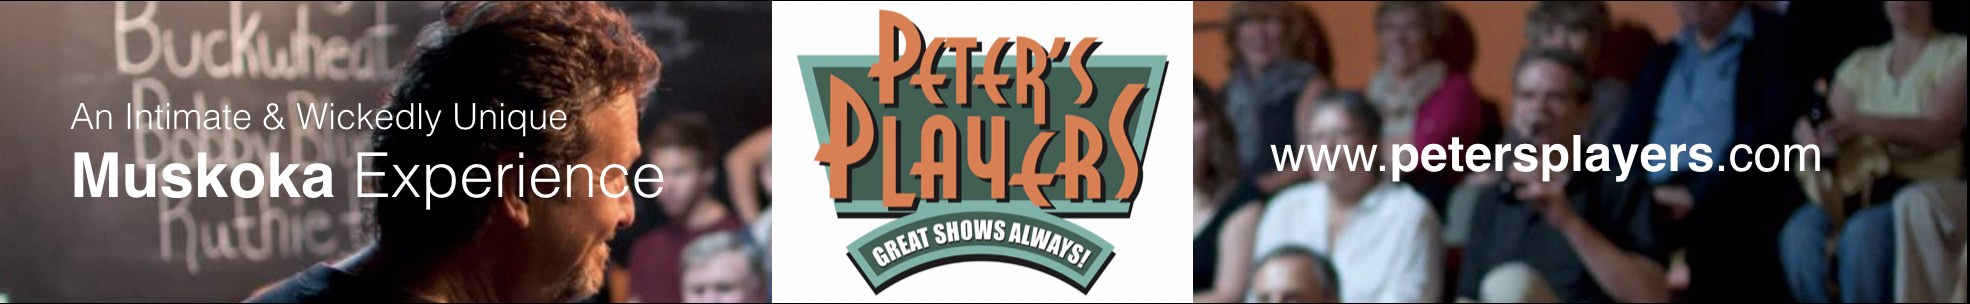 Peters Players Ad